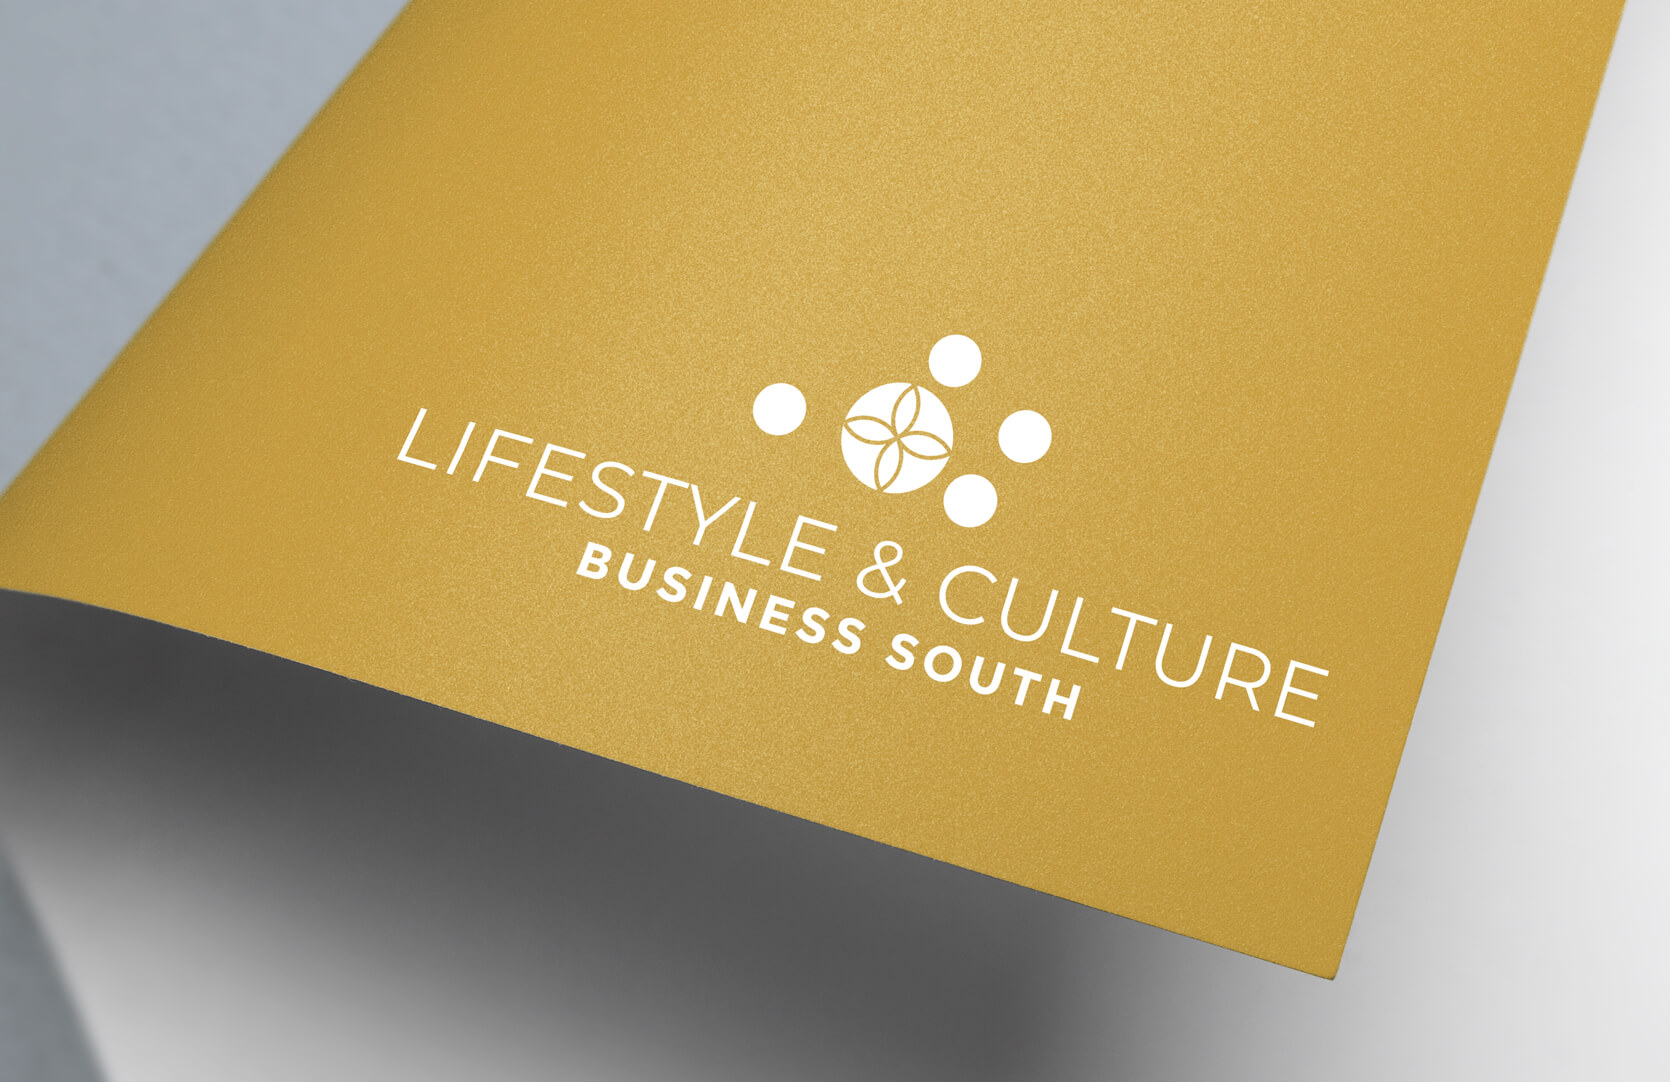 Business South Action Group Brand